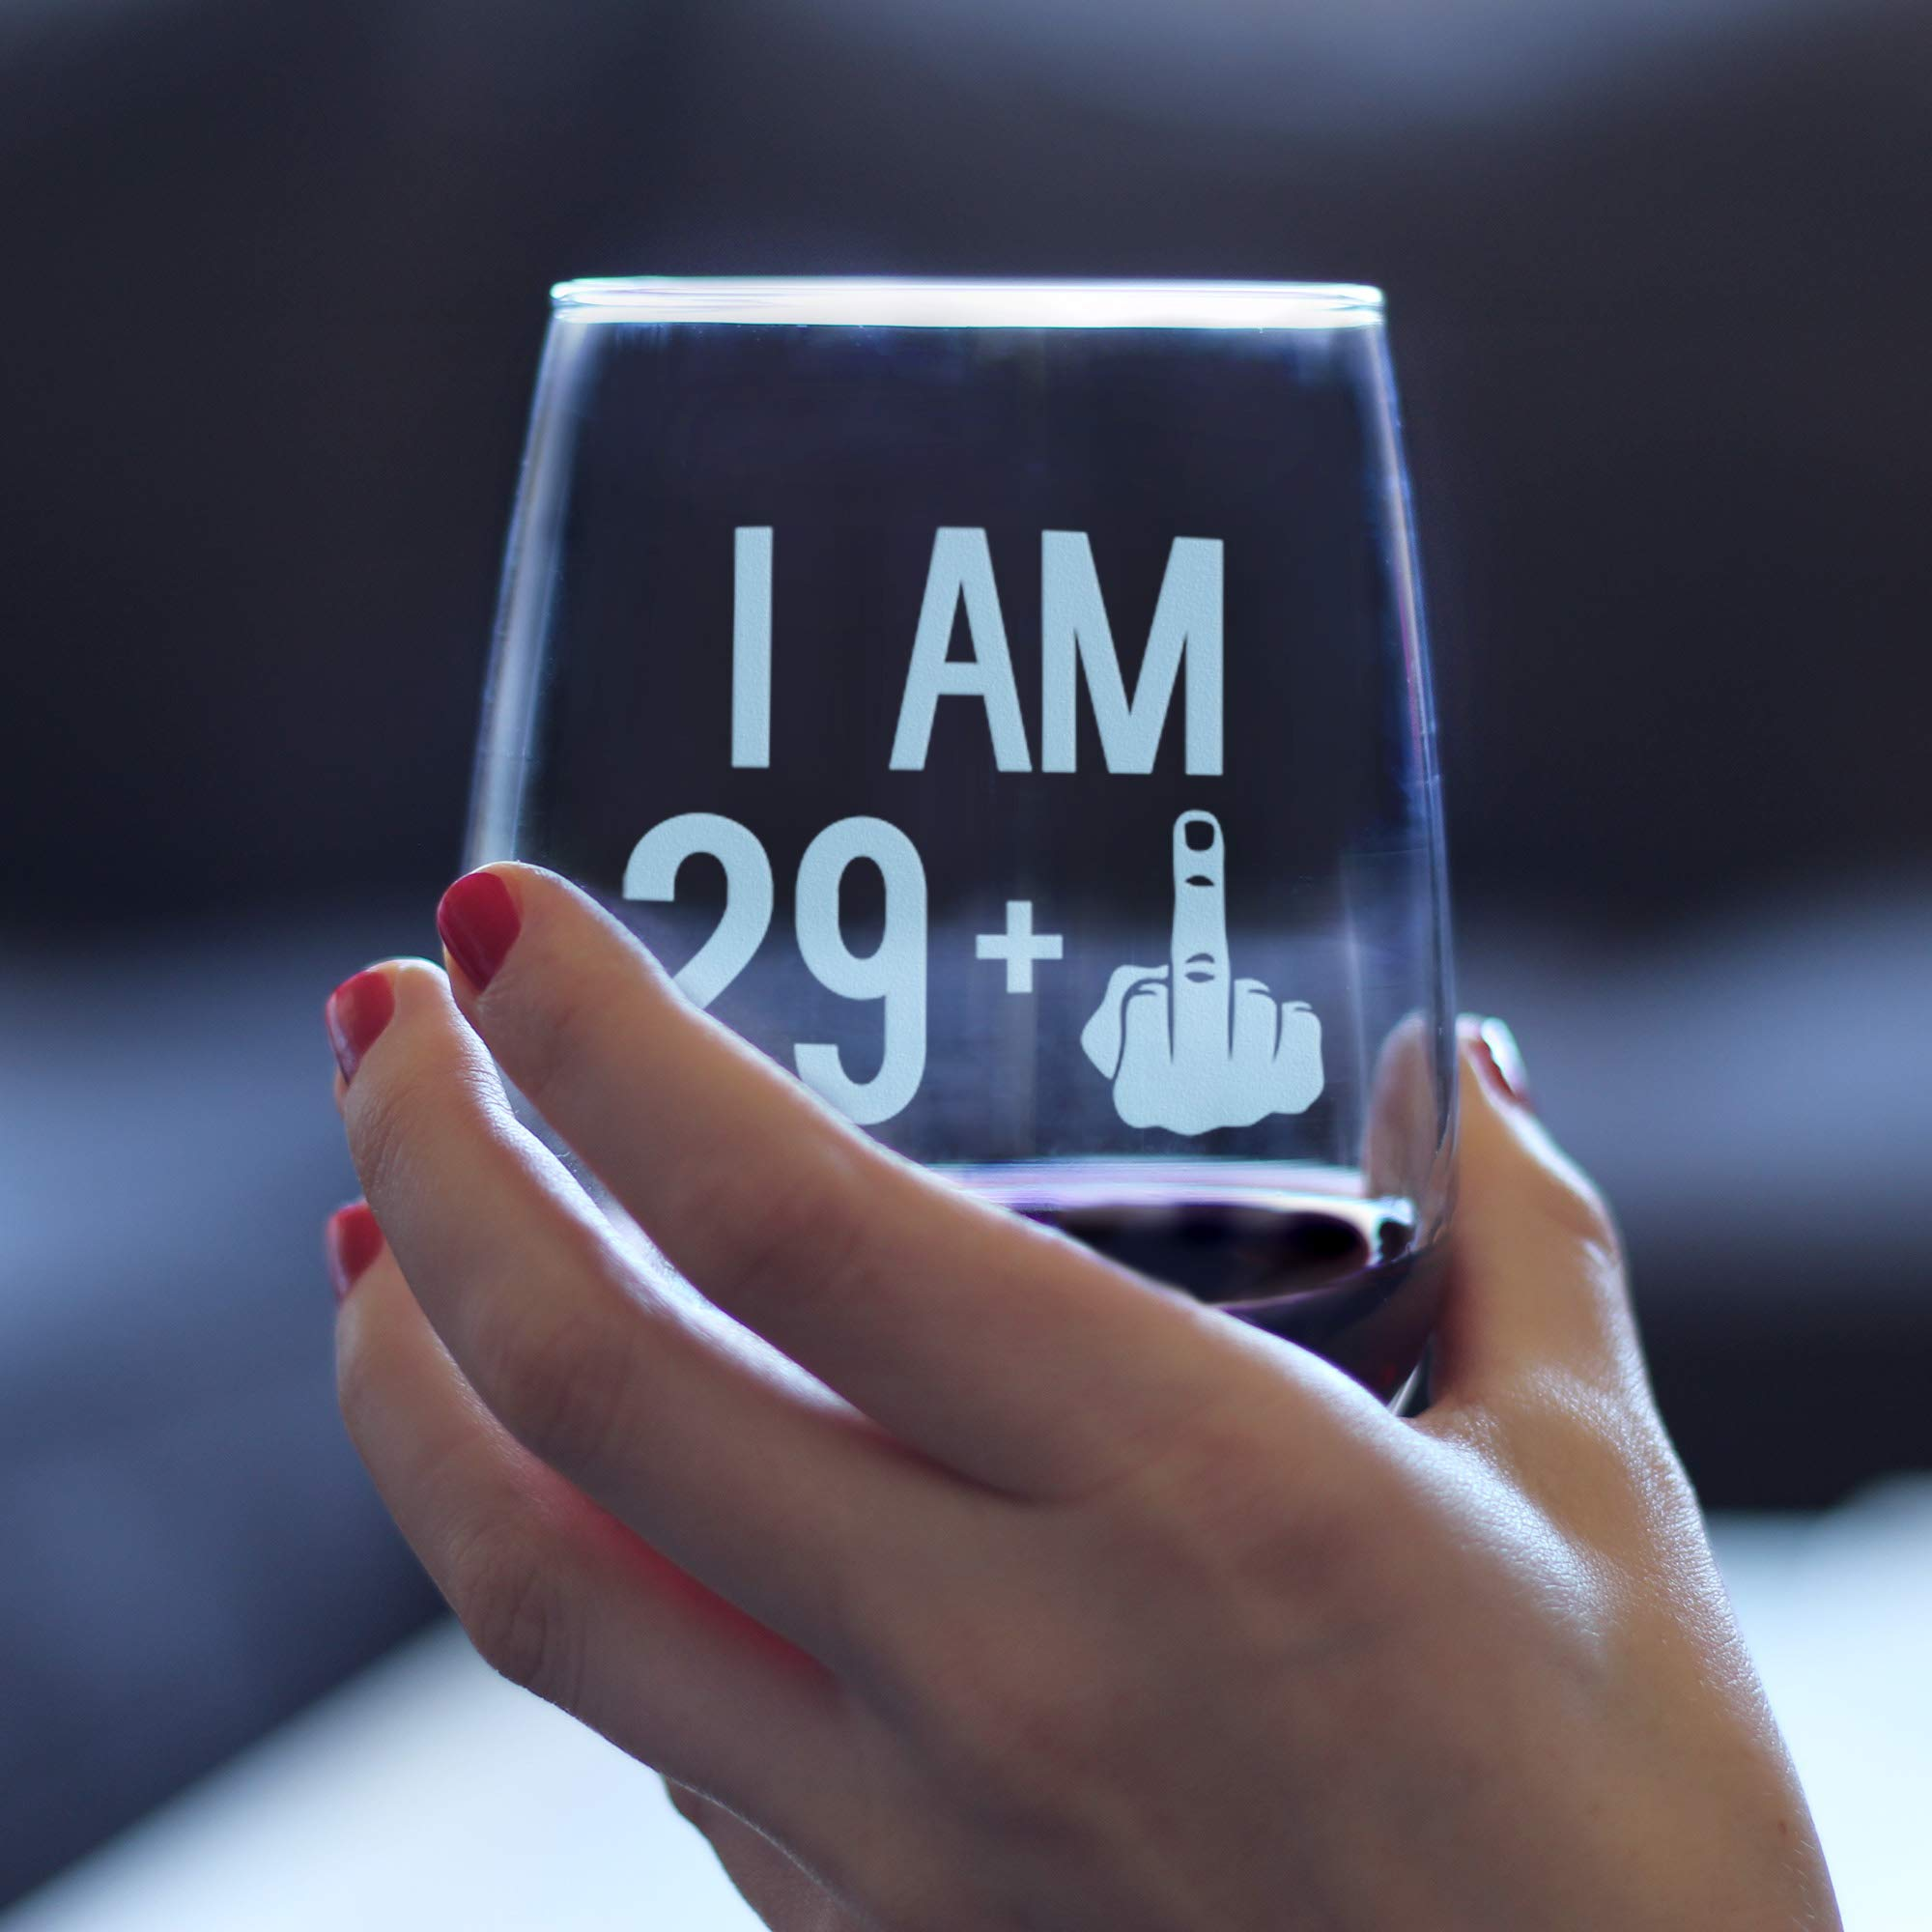 29 + One Middle Finger | 30th Birthday Stemless Wine Glass for Women & Men | Cute Funny Wine Gift Idea | Unique Personalized Bday Glasses for Best Friend Turning 30 | Drinking Party Decoration by Bevvee (Image #3)